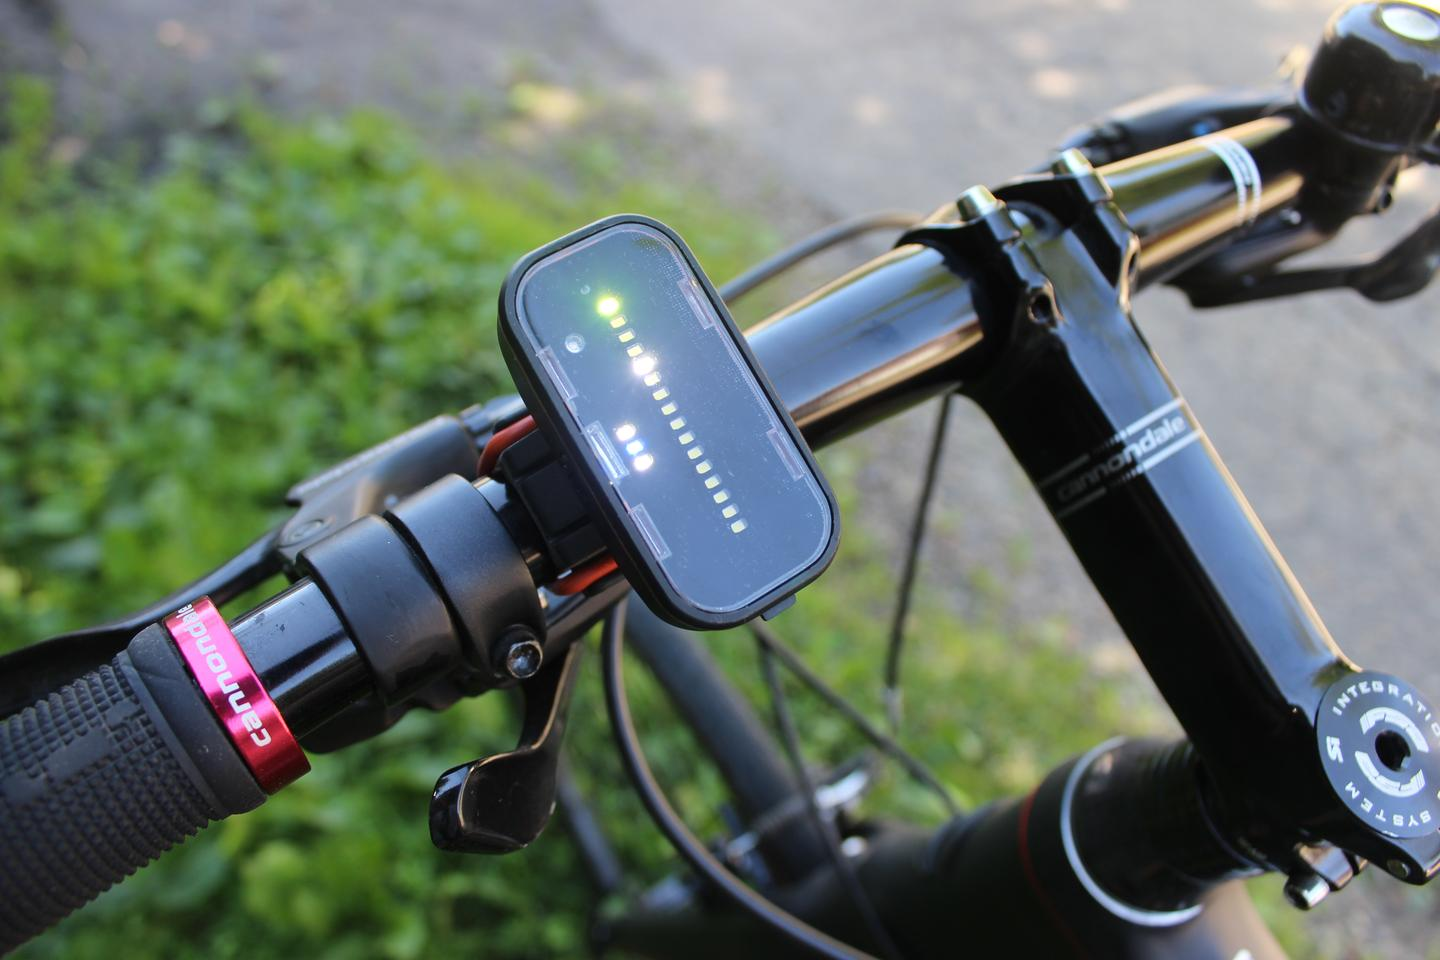 The Backtracker handlebar unit indicates the position of the cyclist (green LED at top) and the relative distance of a motorist closing in from behind (white LED)